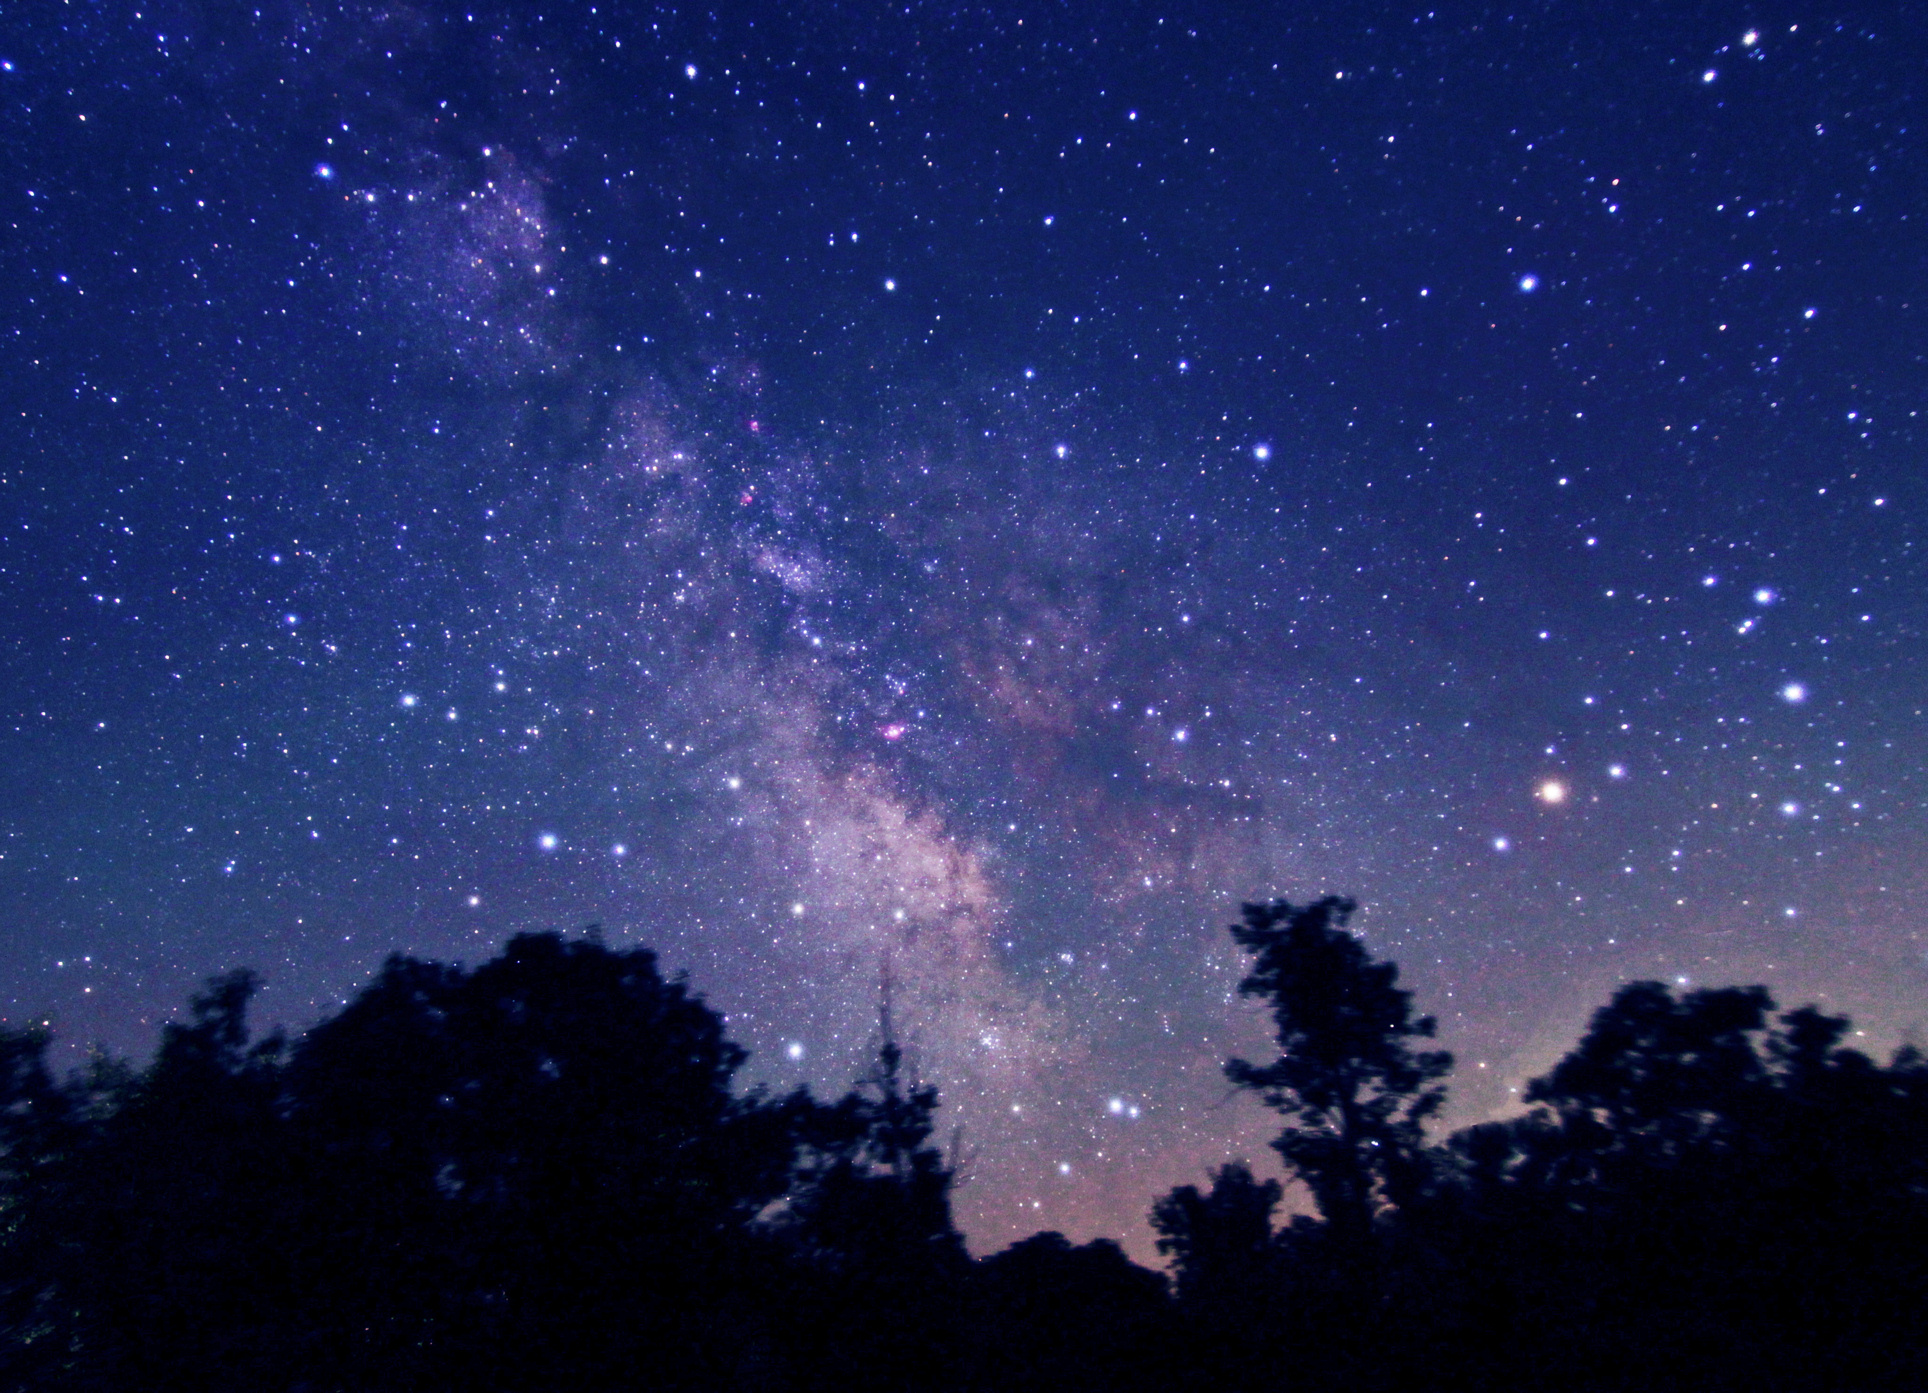 Starry sky wallpapers high quality download free - Images night sky and stars ...